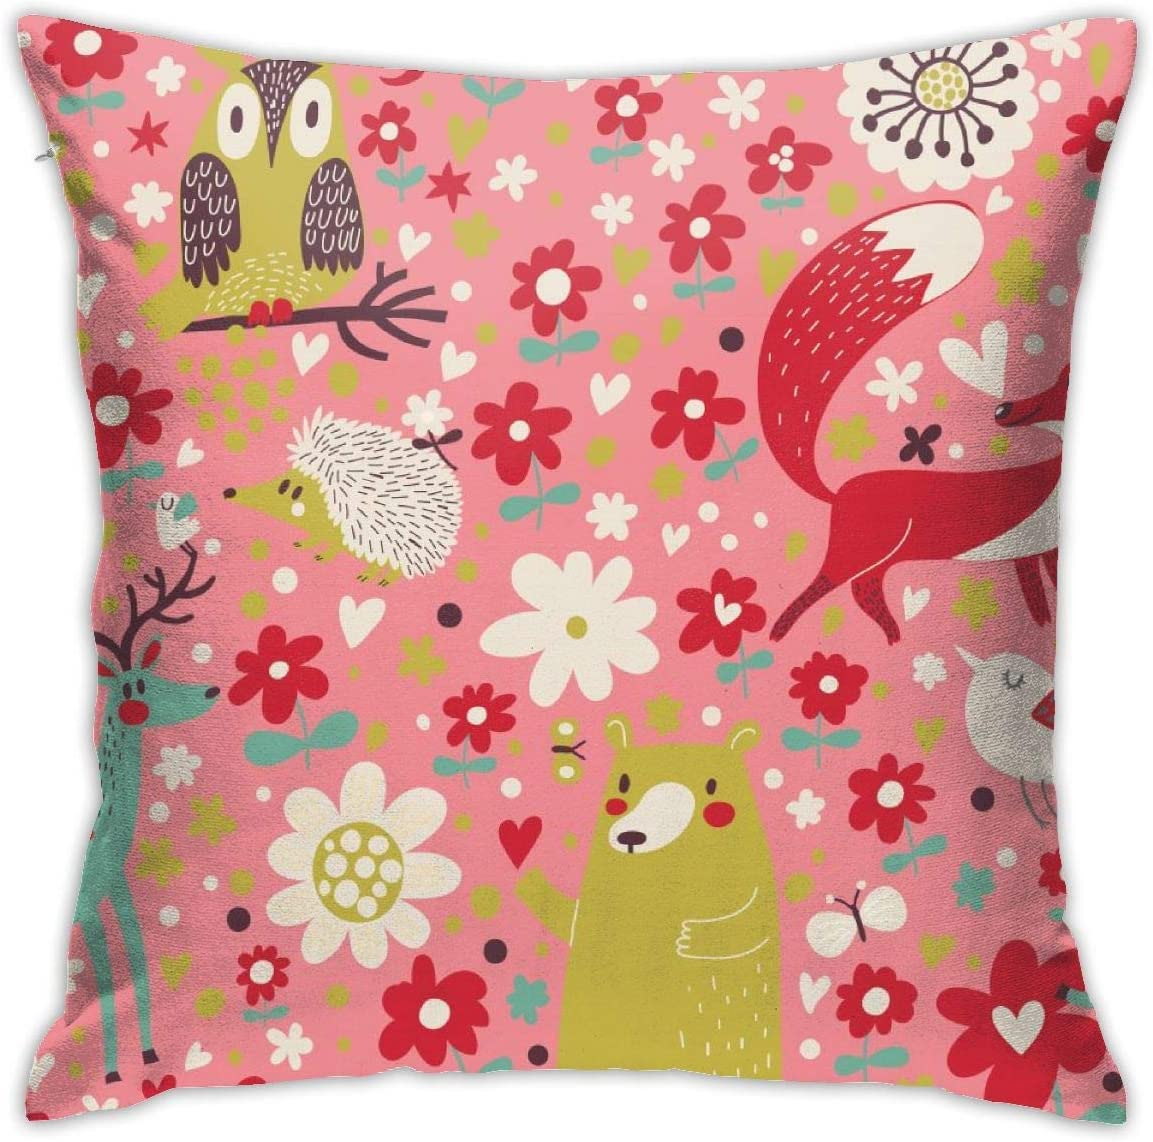 Colorful Cute Bear Fox Deer Decorative Throw Max 90% 2021new shipping free shipping OFF 转换-01 Birds Owl